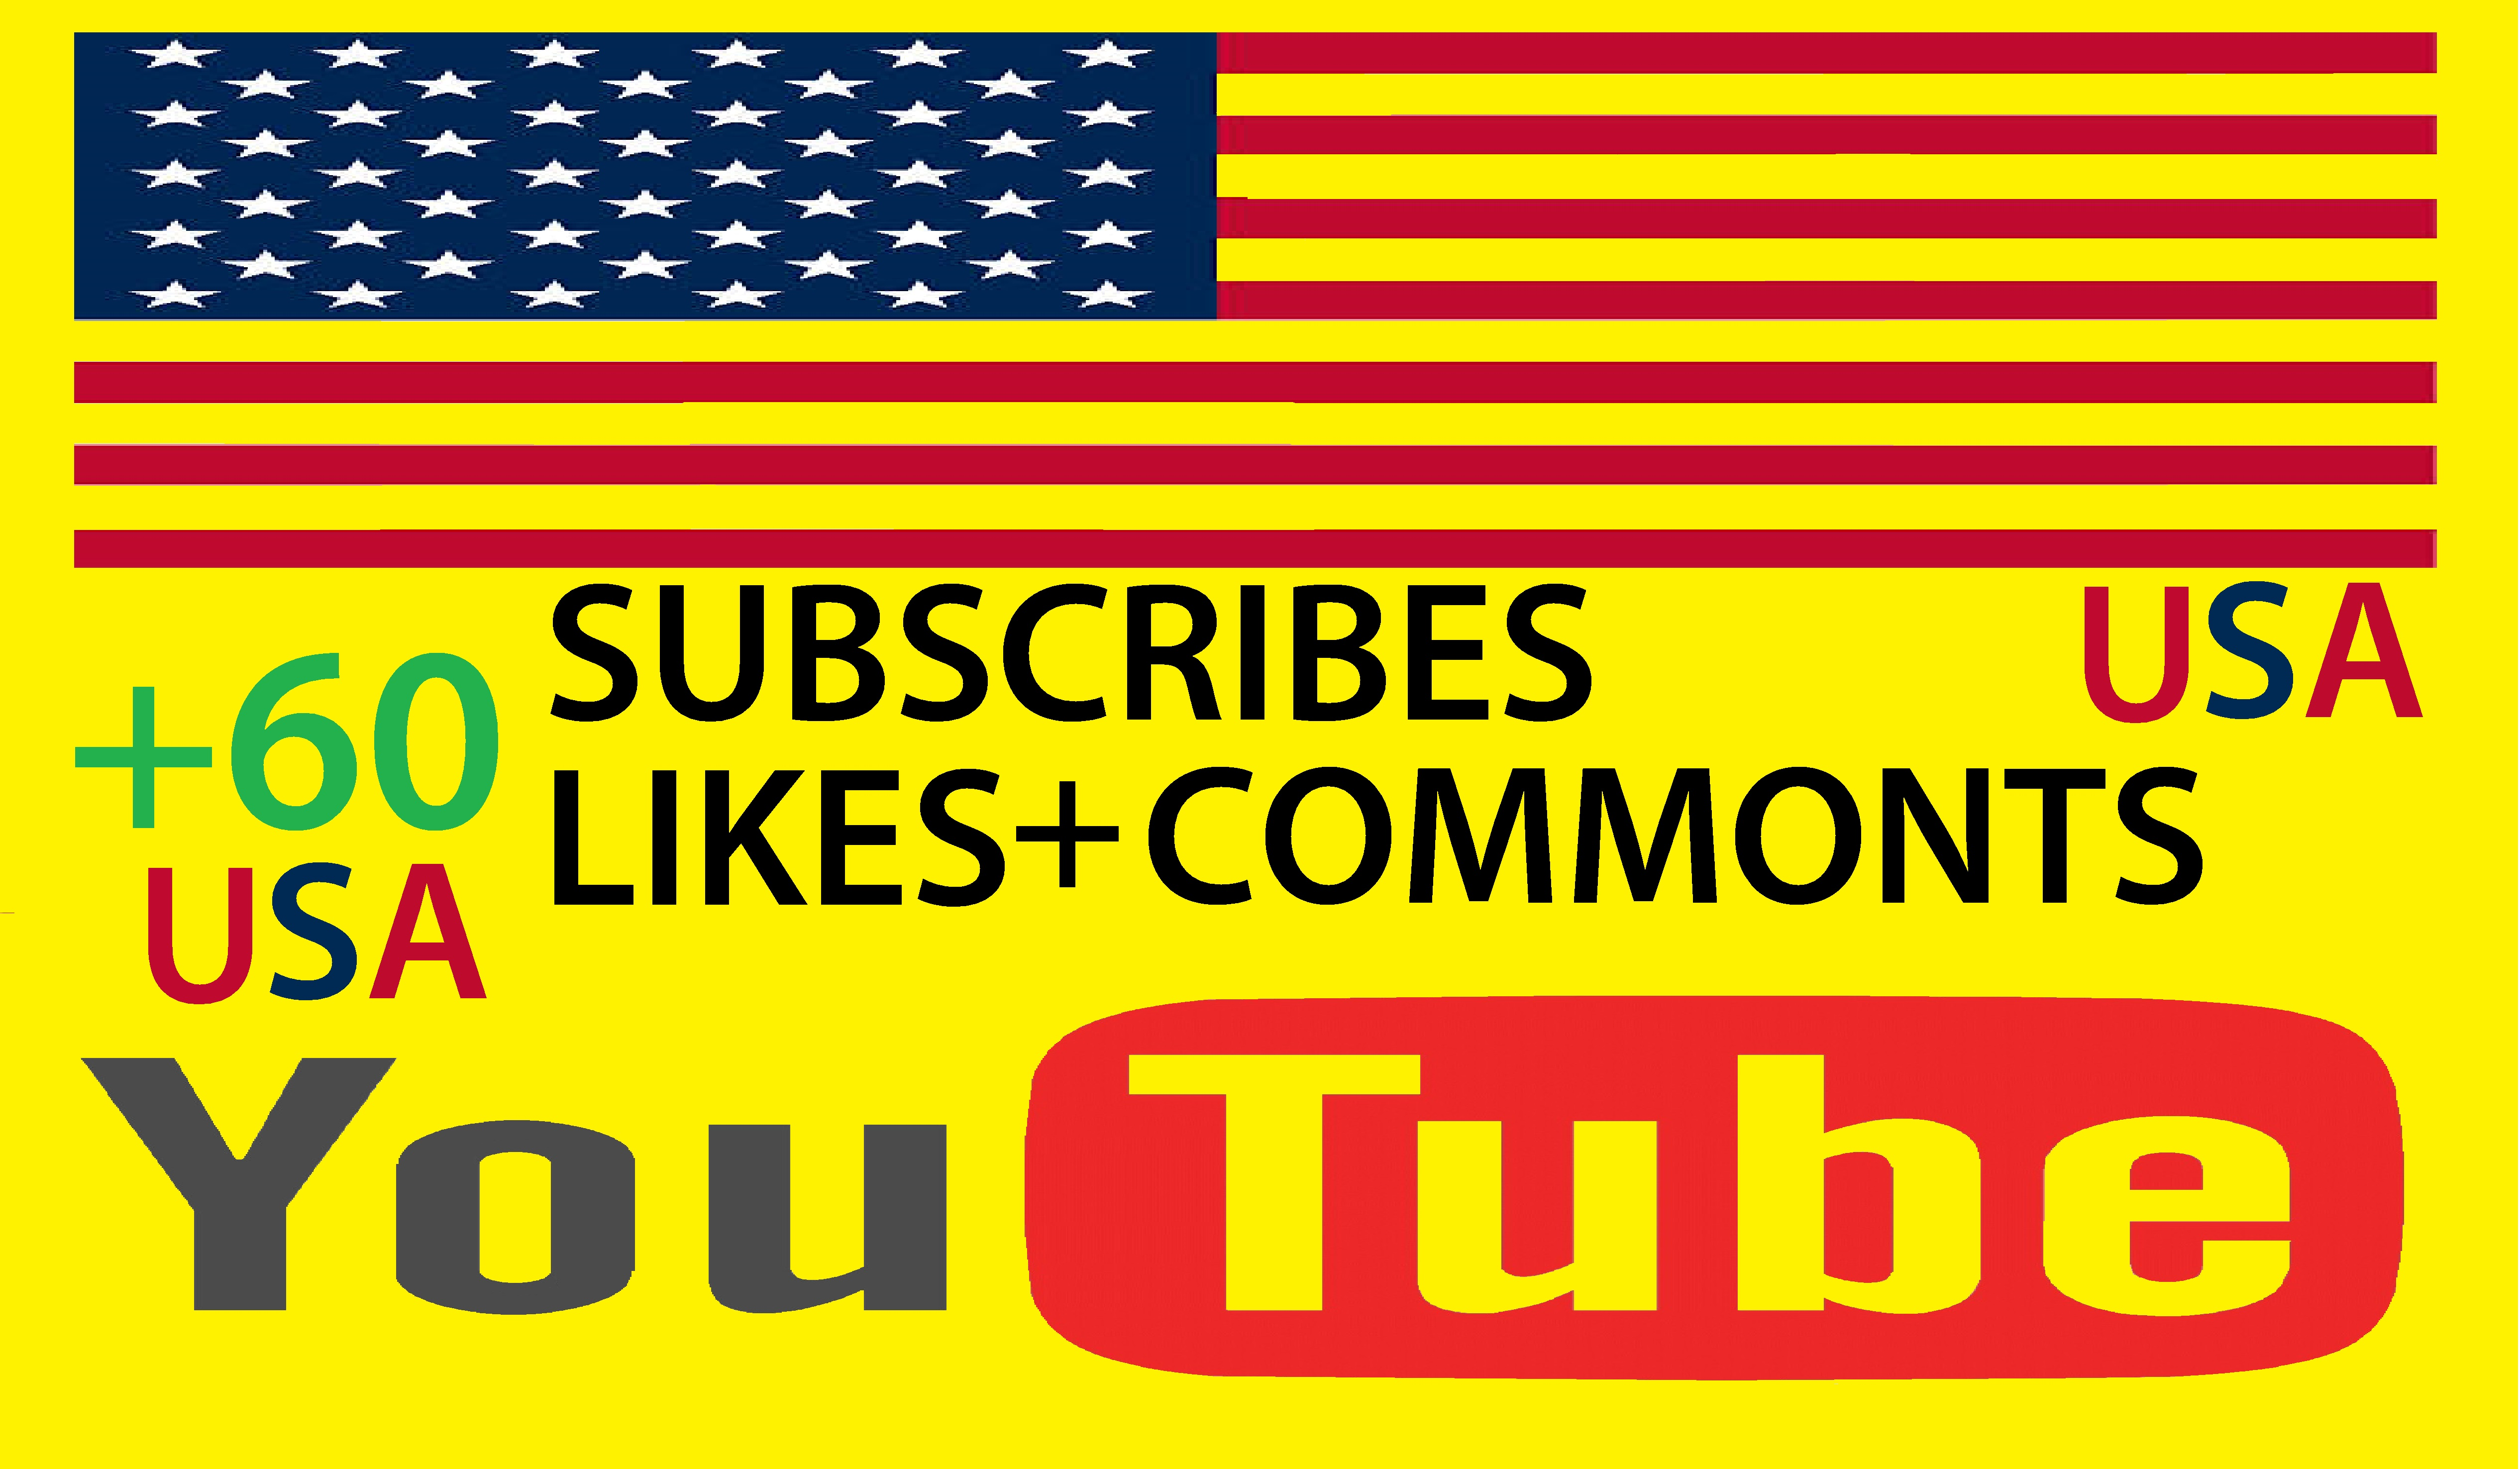 Real +60 YouTube Subscribers and +60 likes video for $3